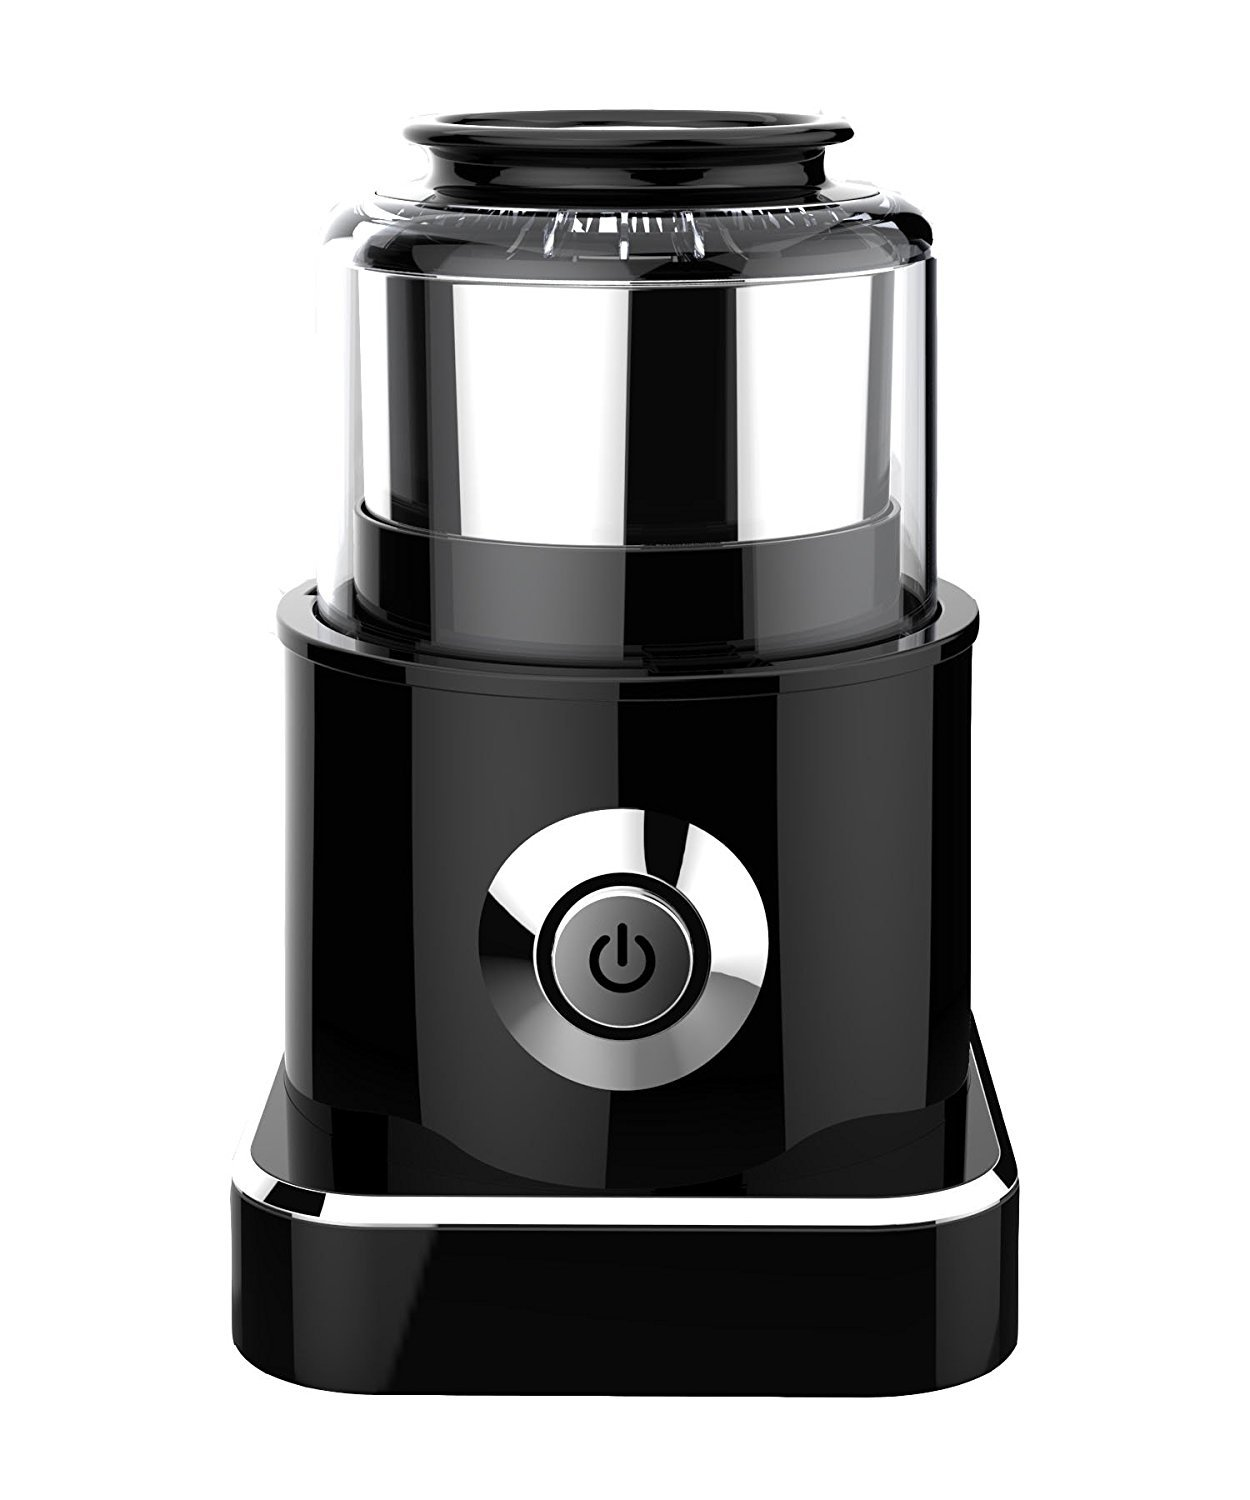 Revel CCM201B Super Food Chopper, 400 W, Black